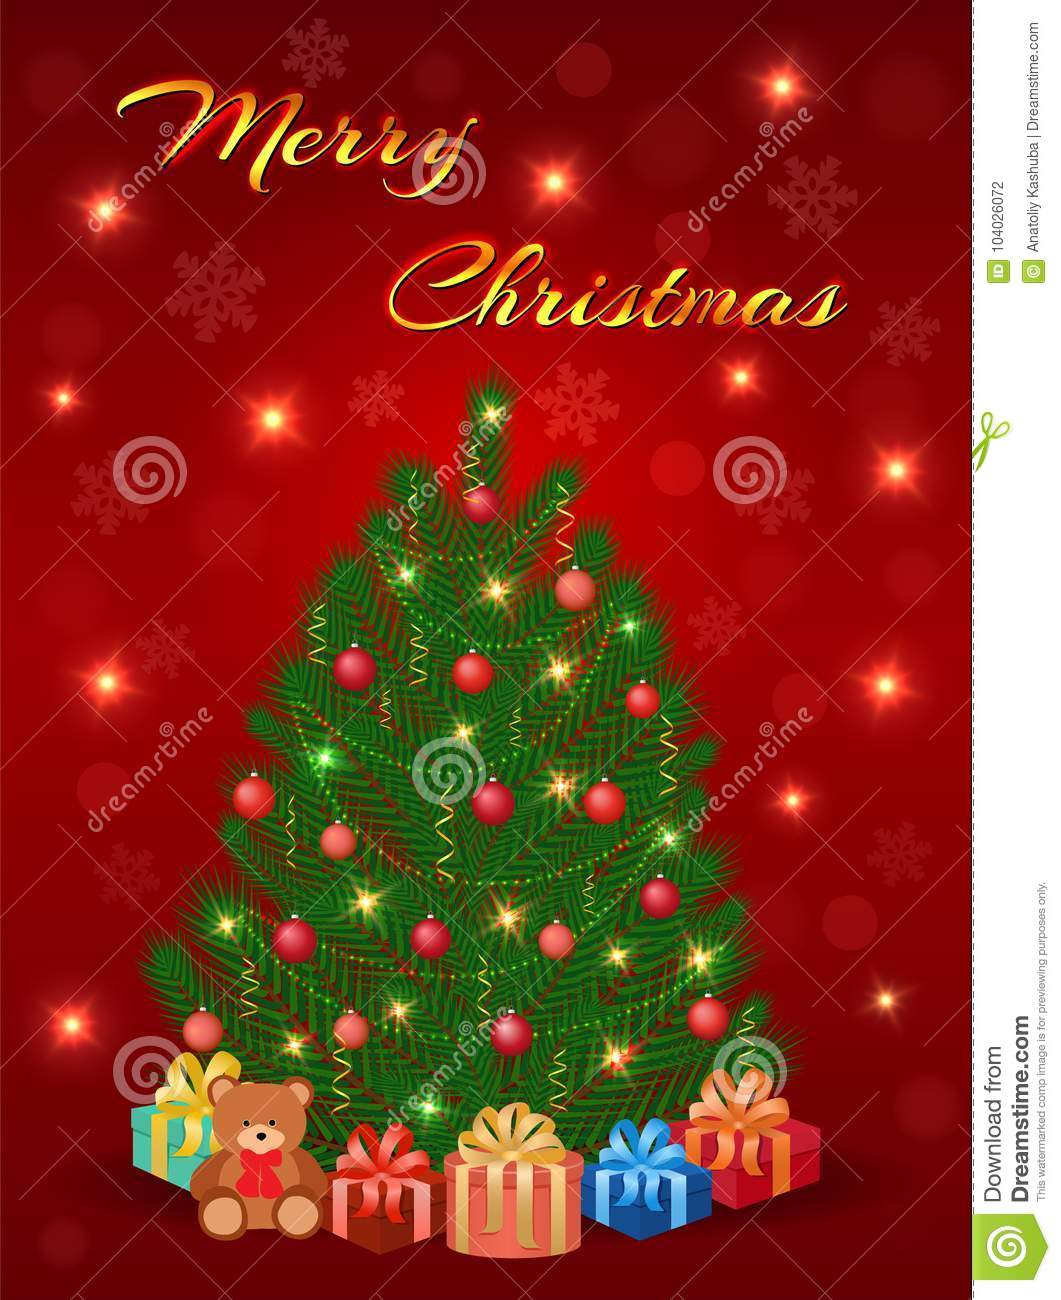 Merry Christmas Greeting Card Design With Christmas Tree Gifts And